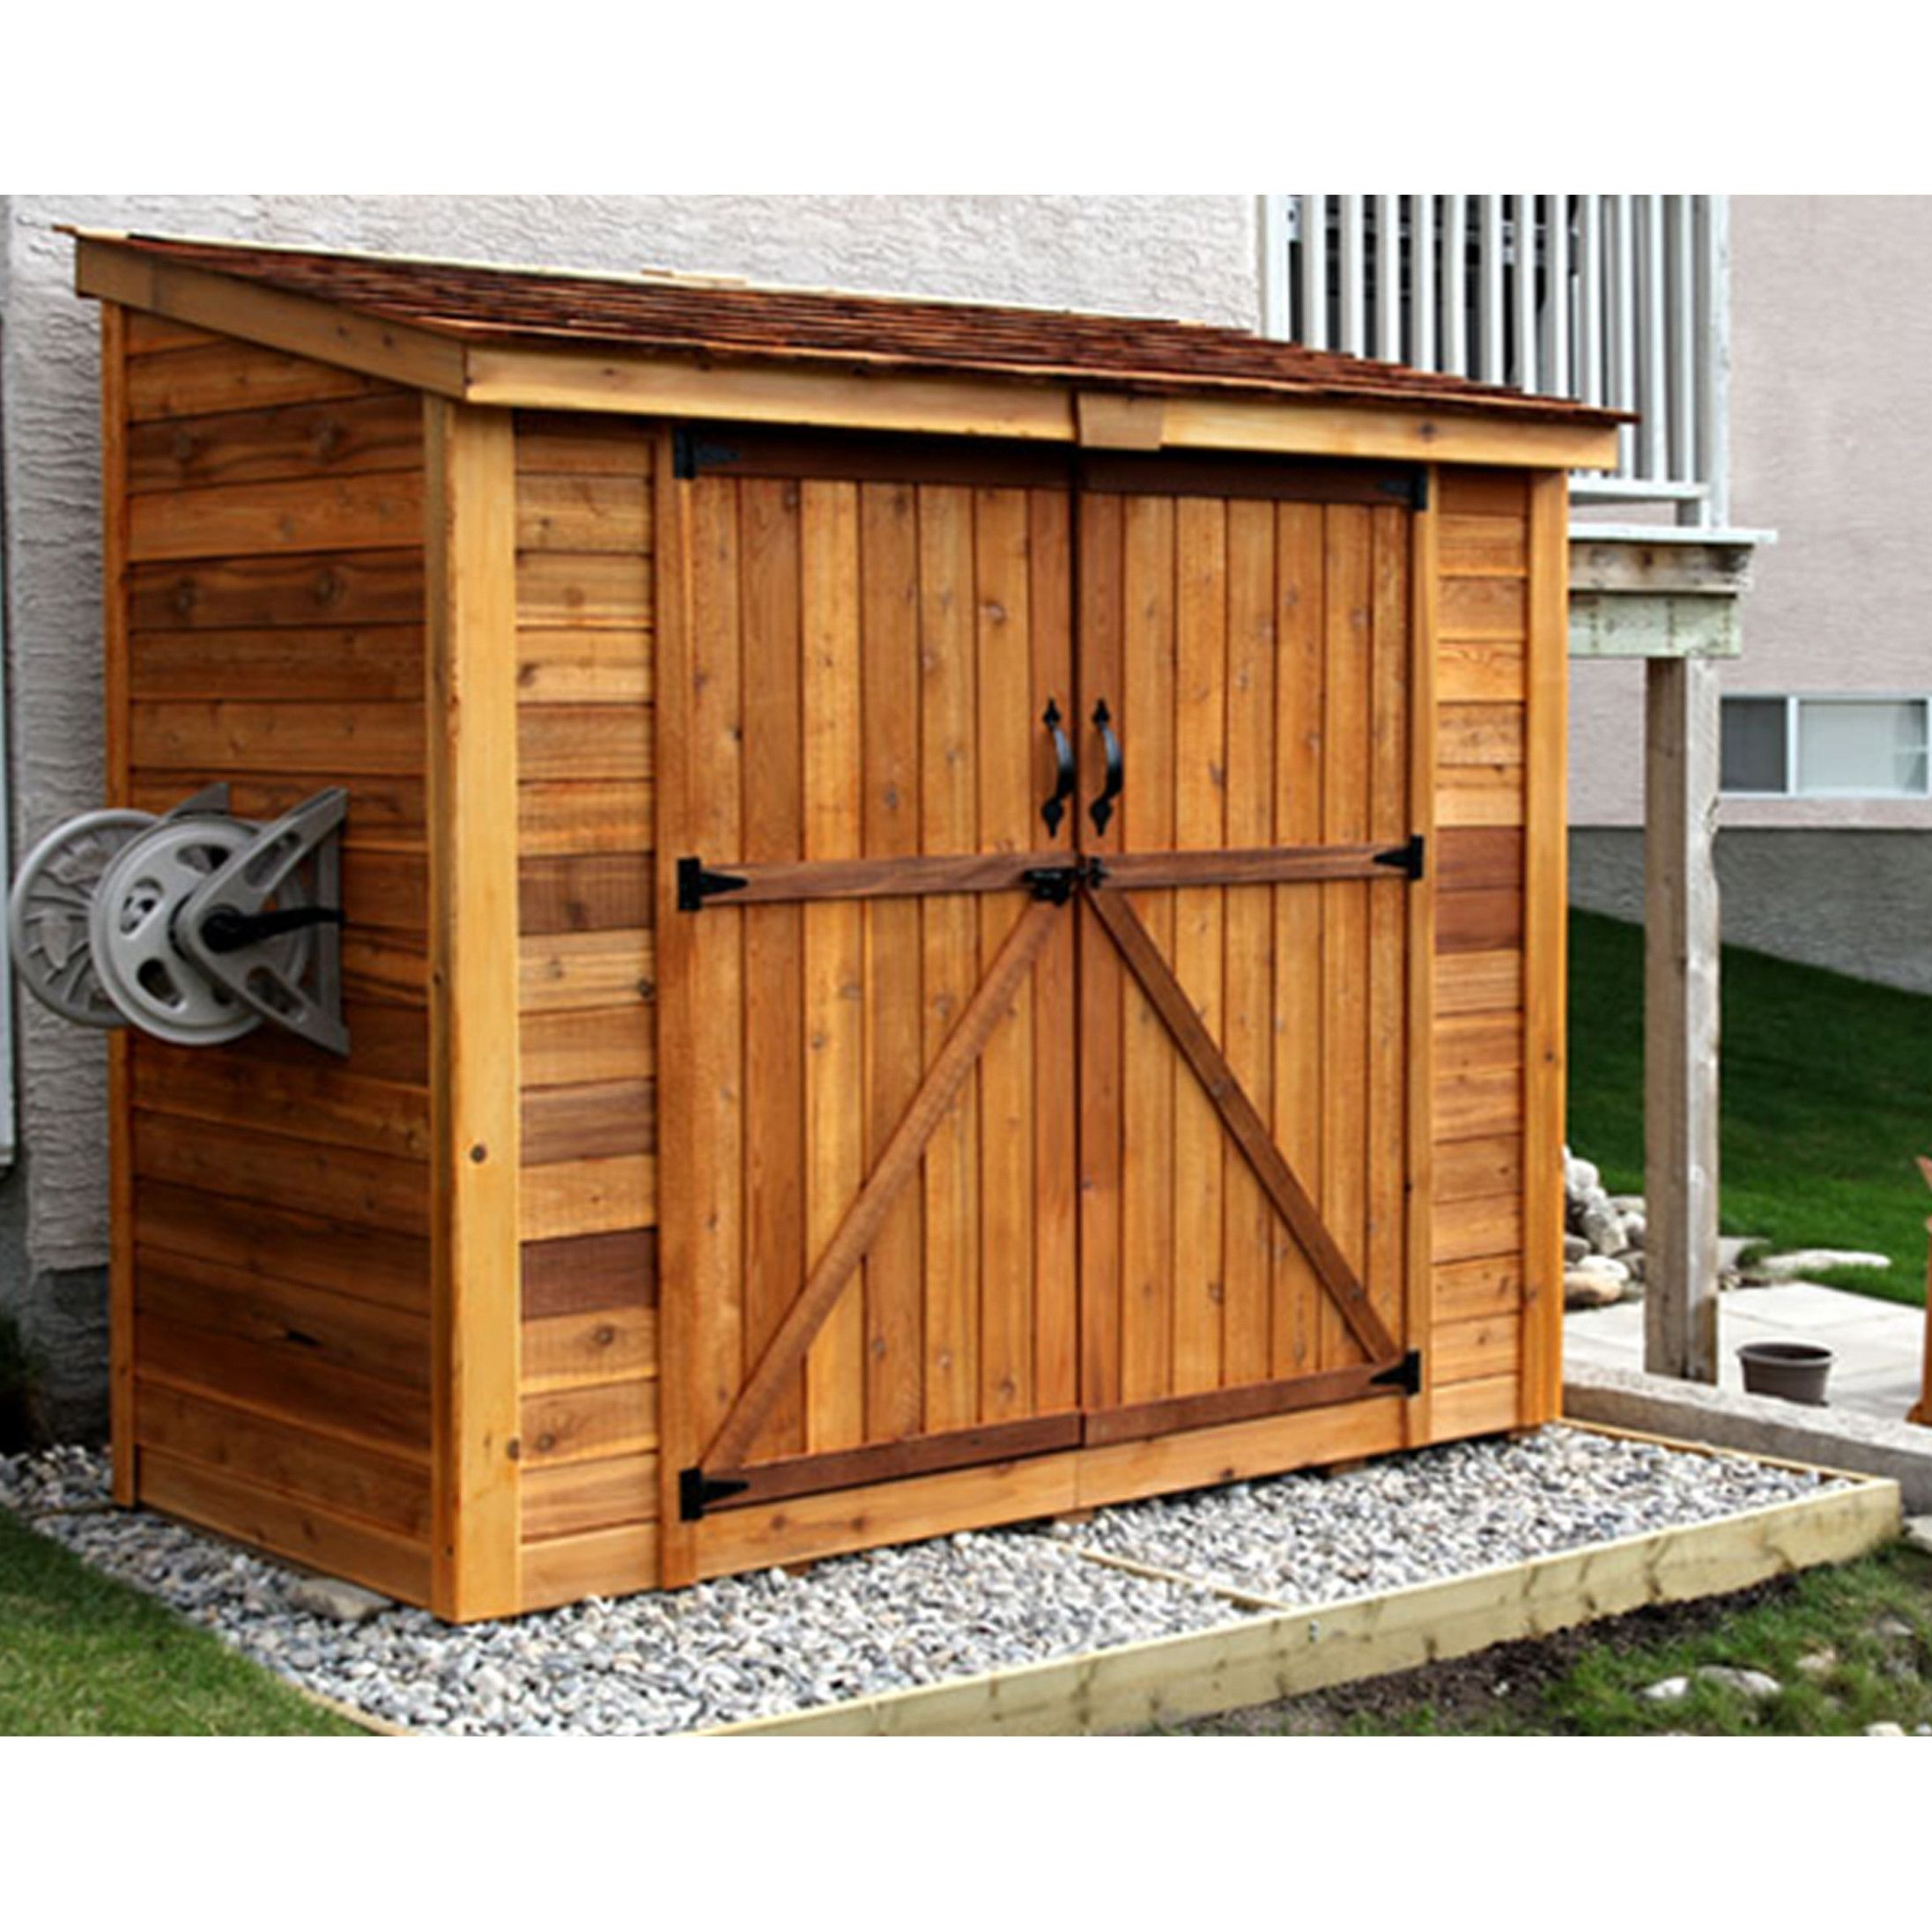 Garden Shed With Double Doors Shed Firewood Storage